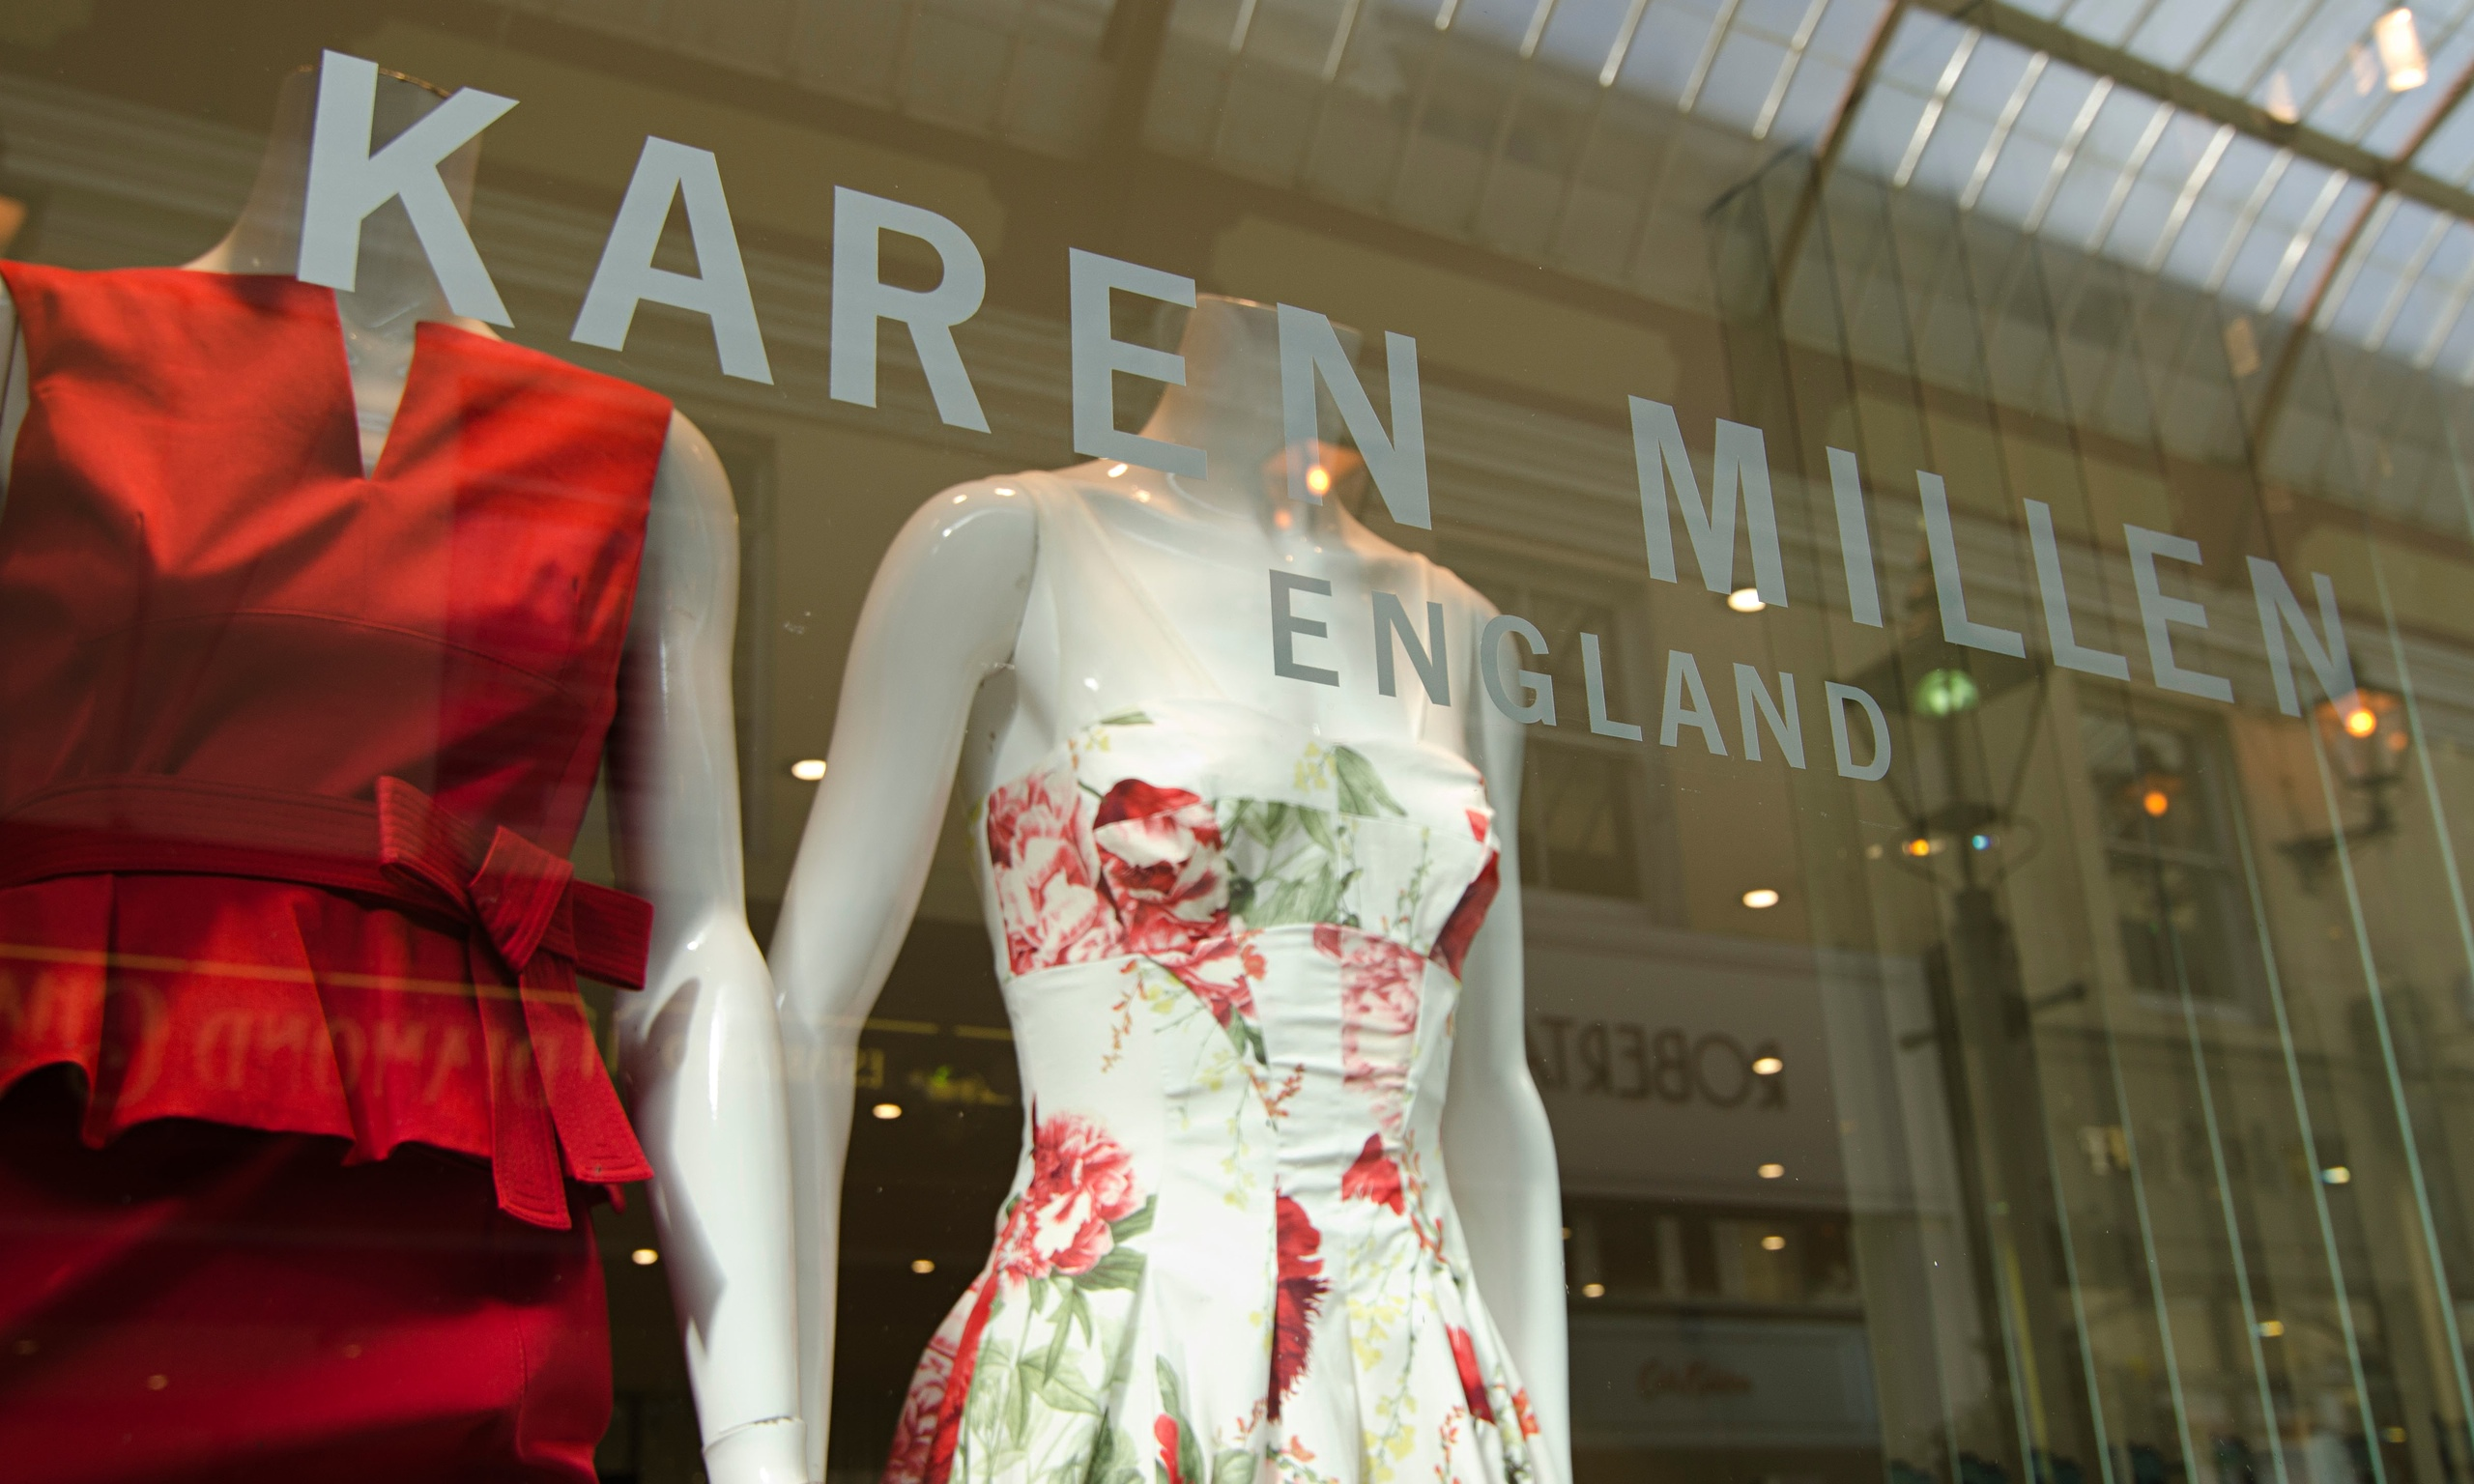 Karen Millen shop window